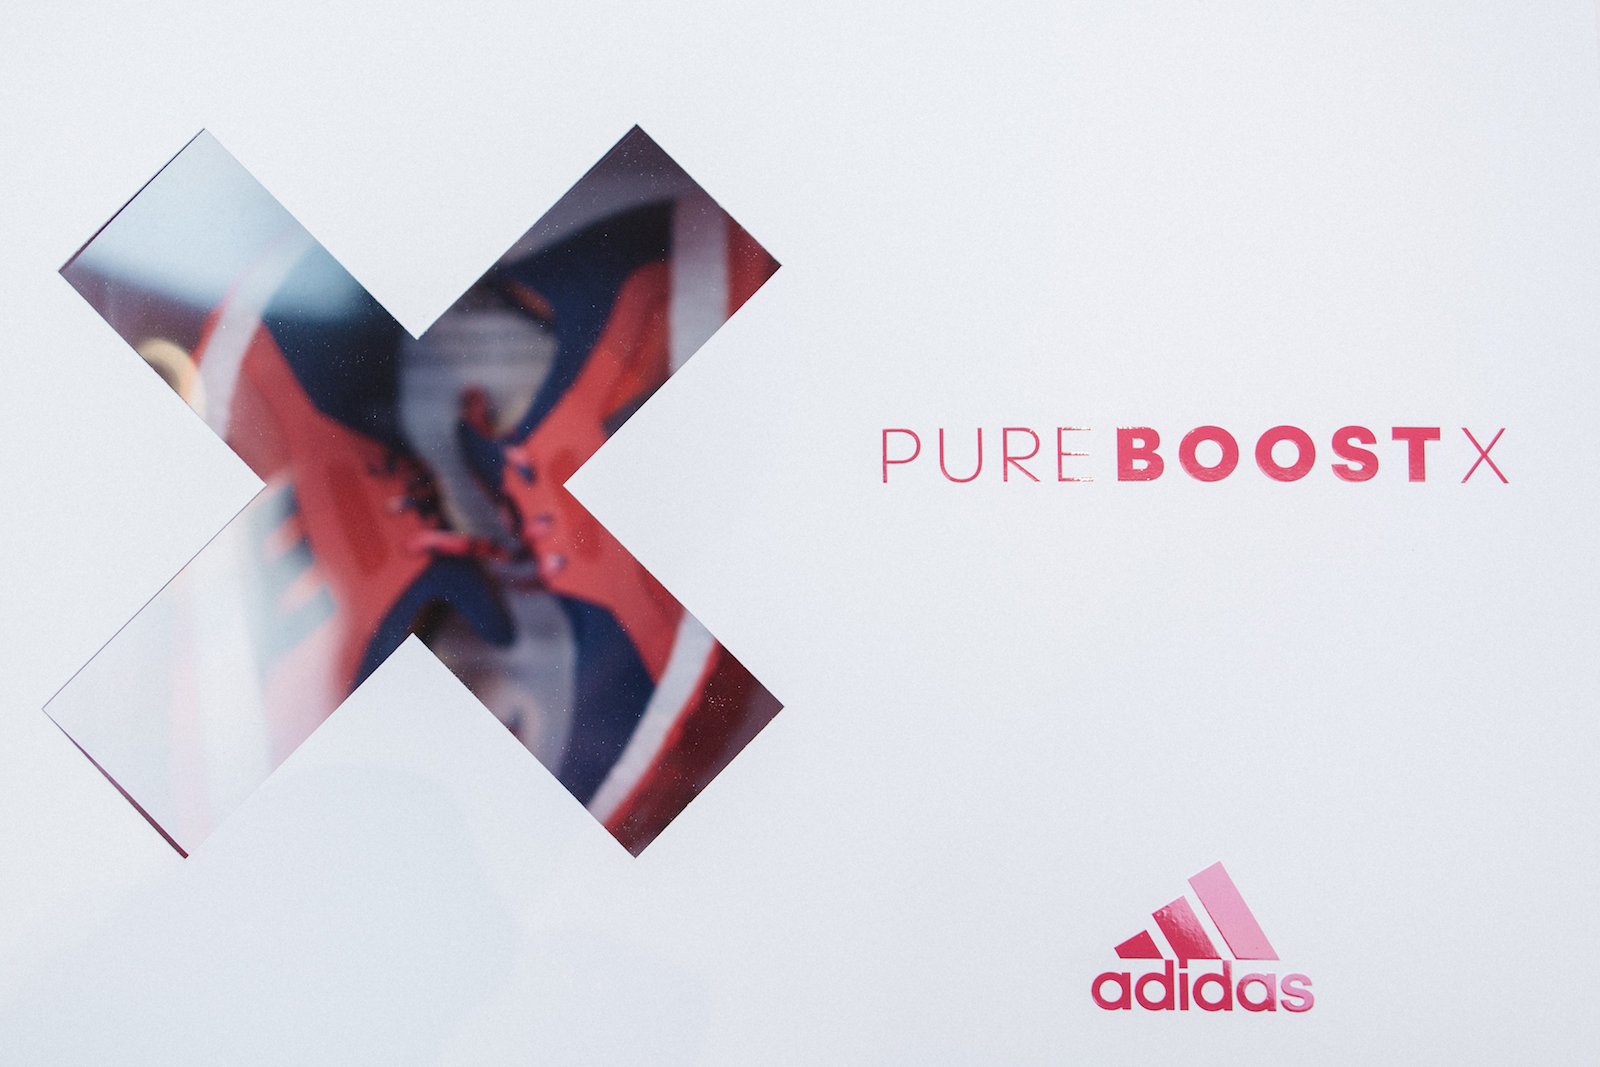 Let's Work Out: Adidas Pure Boost X Women's Running Shoe | Love Daily Dose